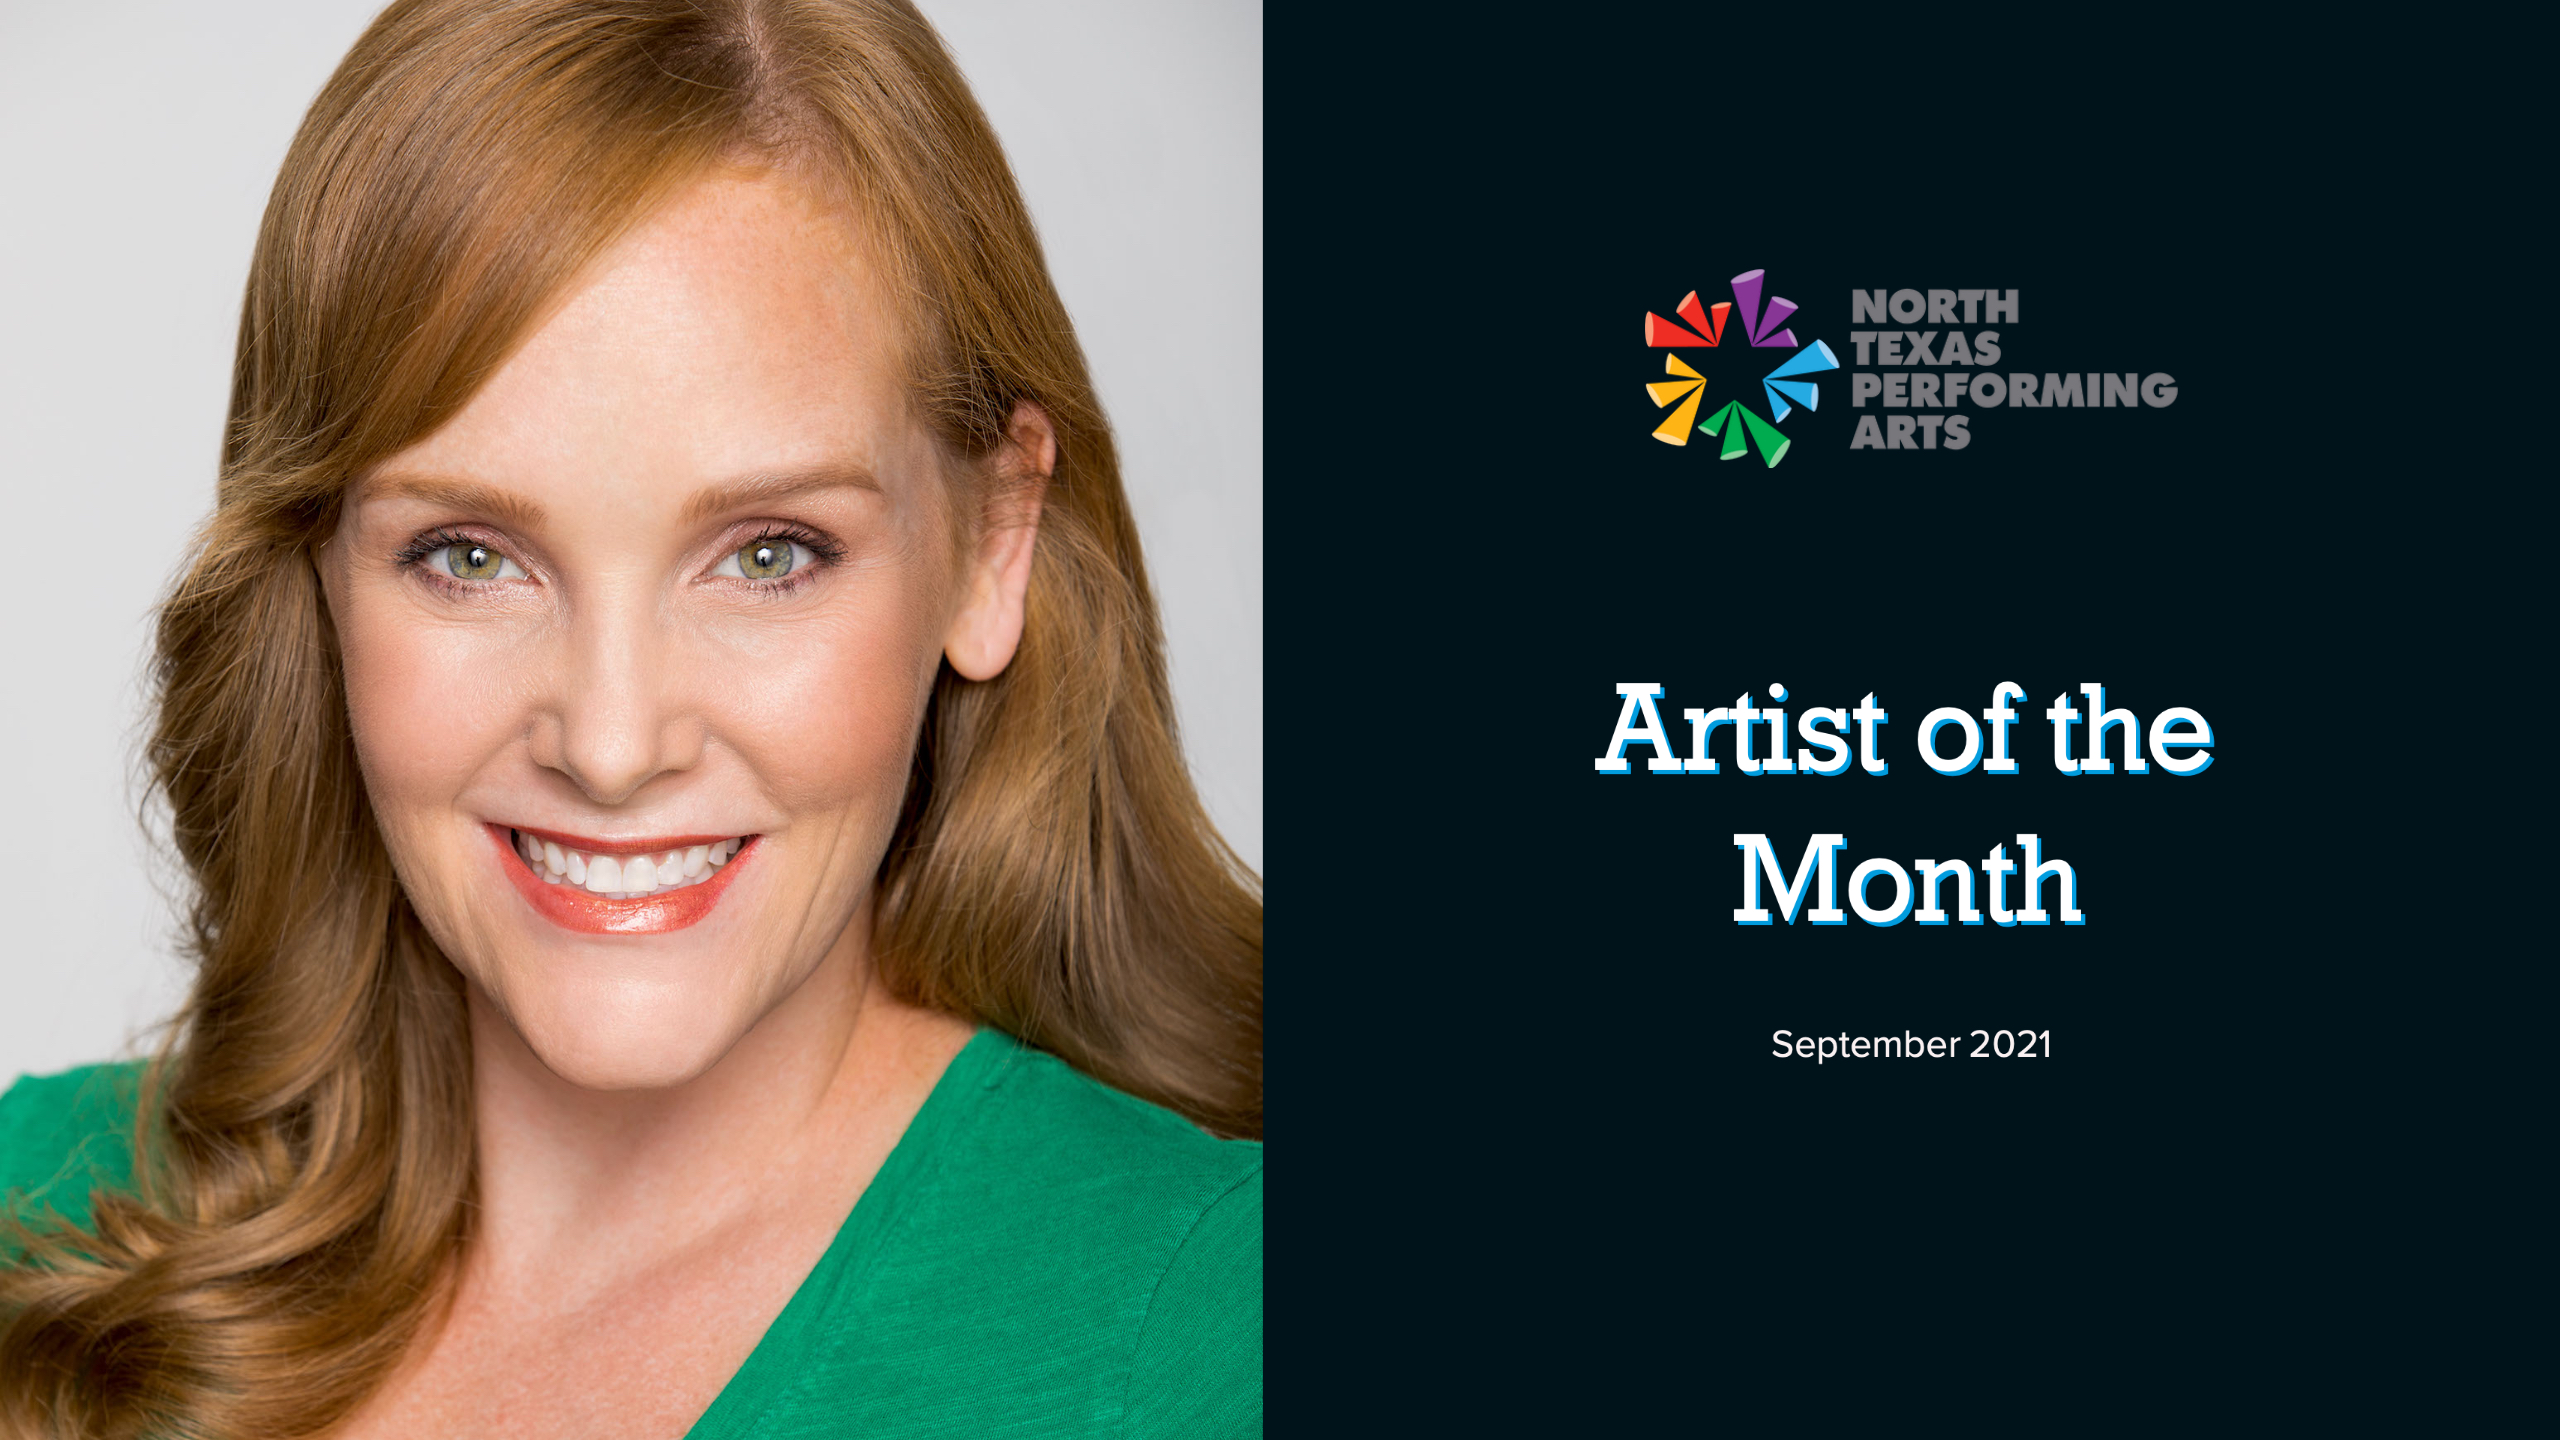 NTPA Announces Cheryl Lowber as the September Artist of the Month 2021